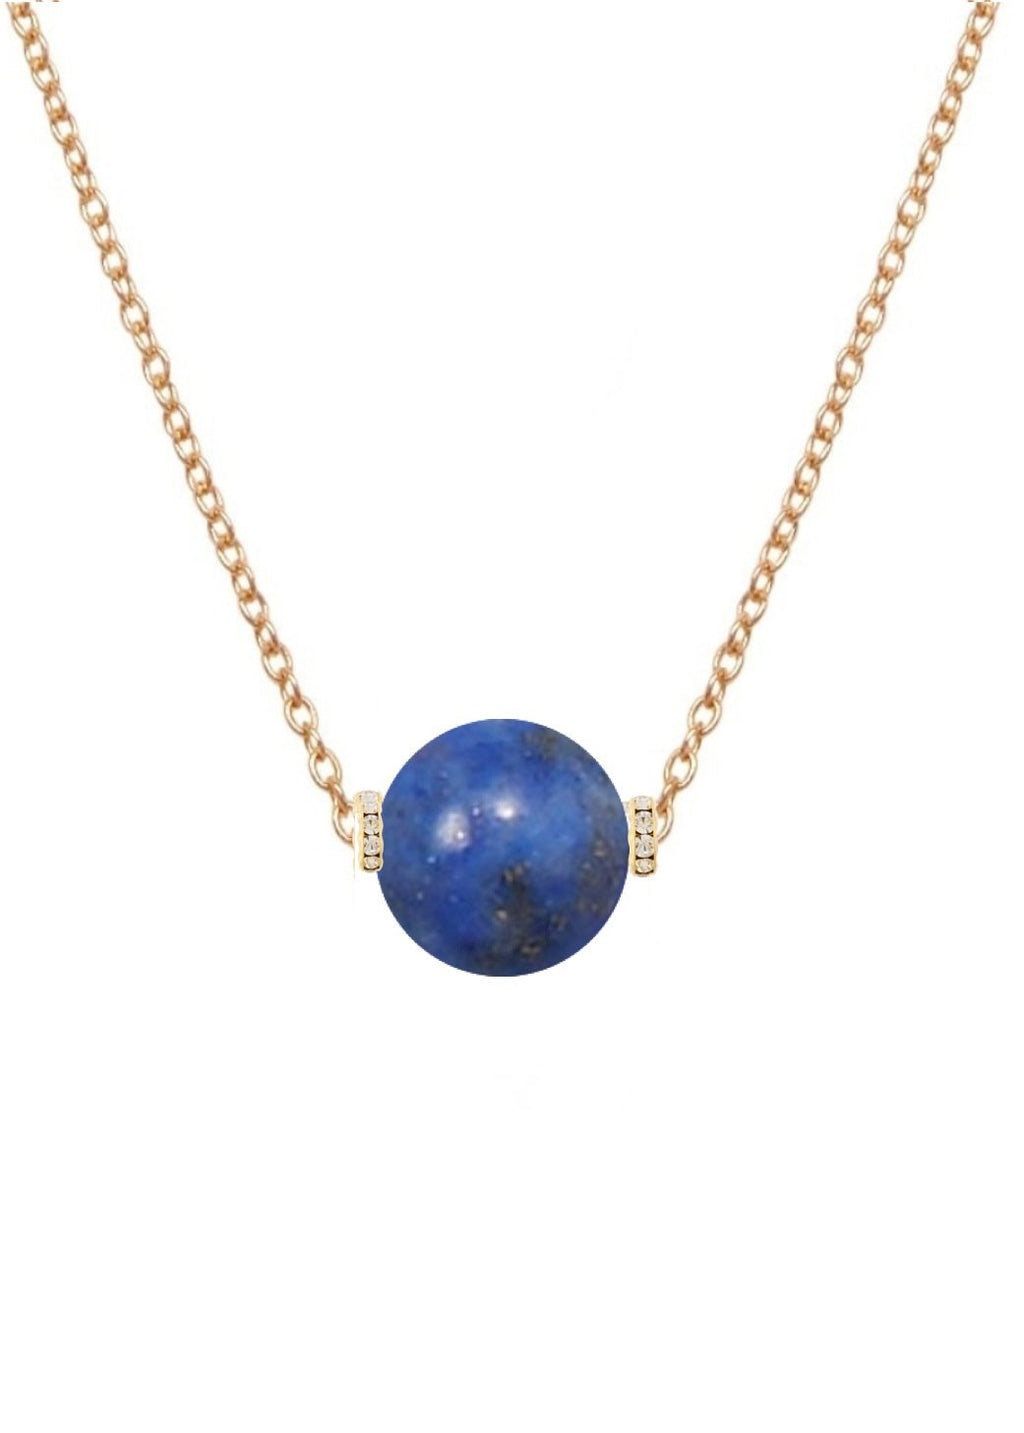 18k Gold Lapis Embelished Solitaire Necklace